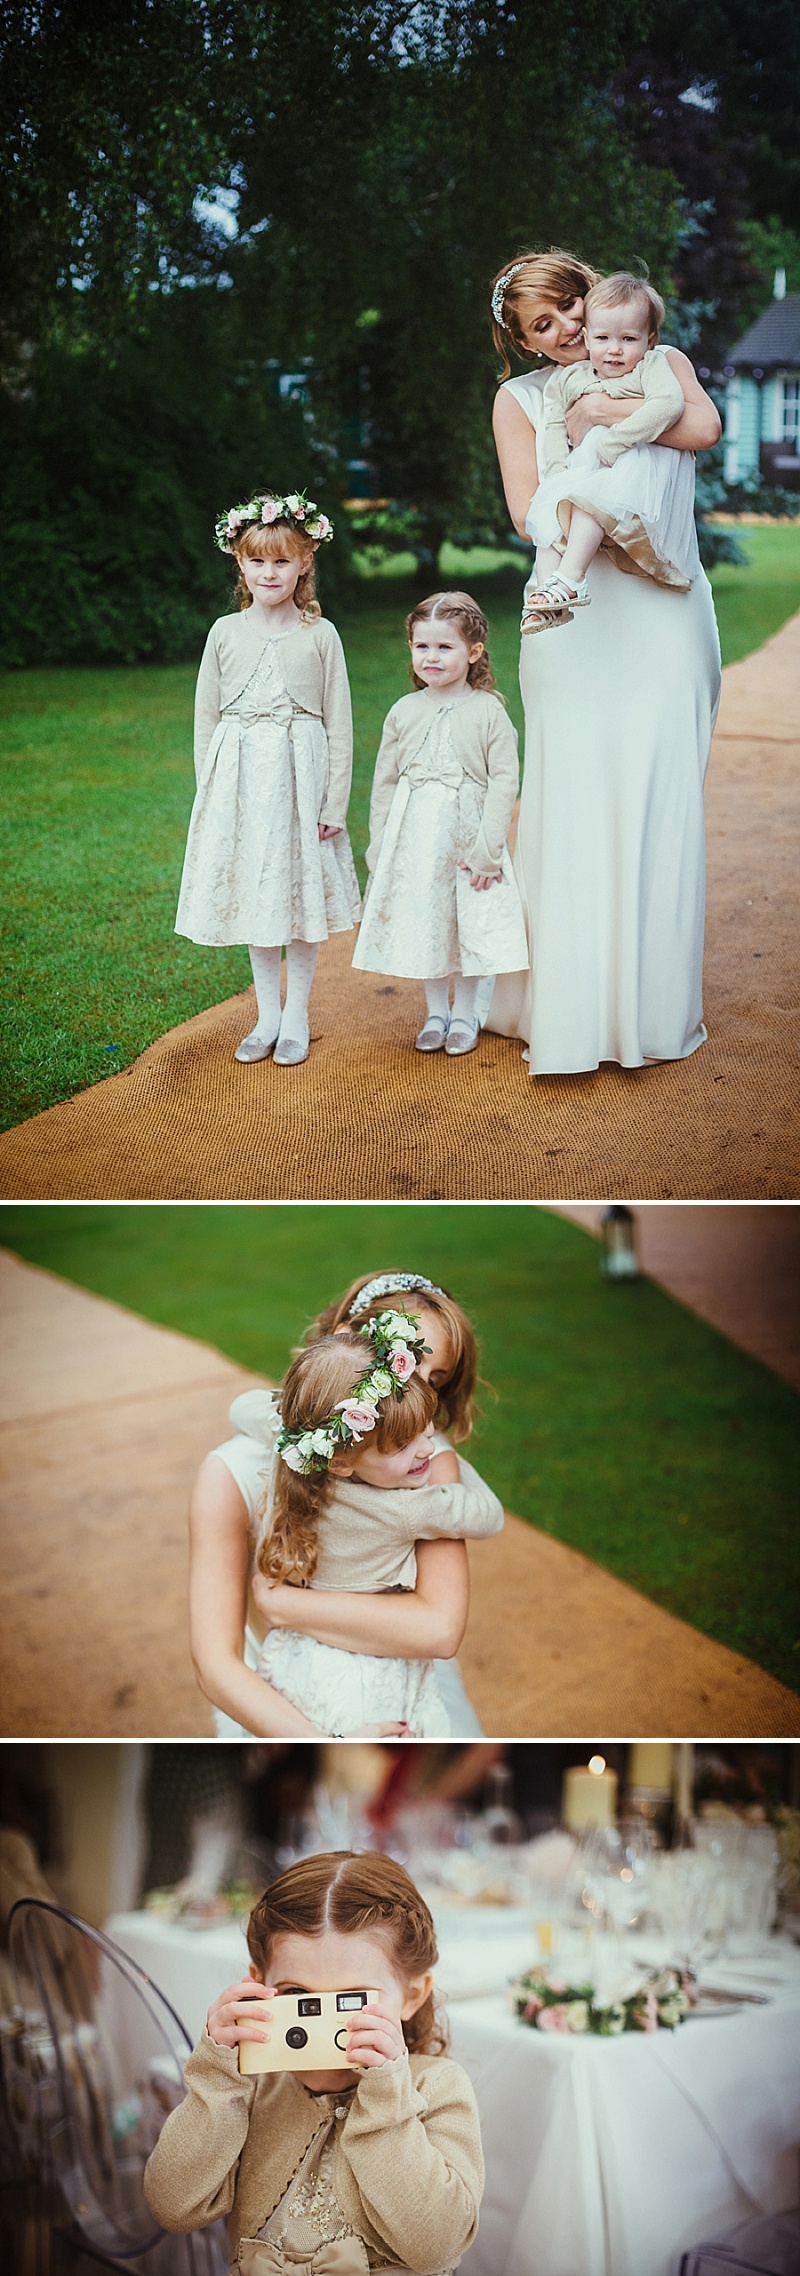 A Vintage Inspired Marquee Wedding At The Bride's Family Home With Bride In David Fielden And Jimmy Choo And Bridesmaids In Sequinned Adrianna Pappell Gowns With Groom And Groomsmen In Suits By Dress To Kill 5